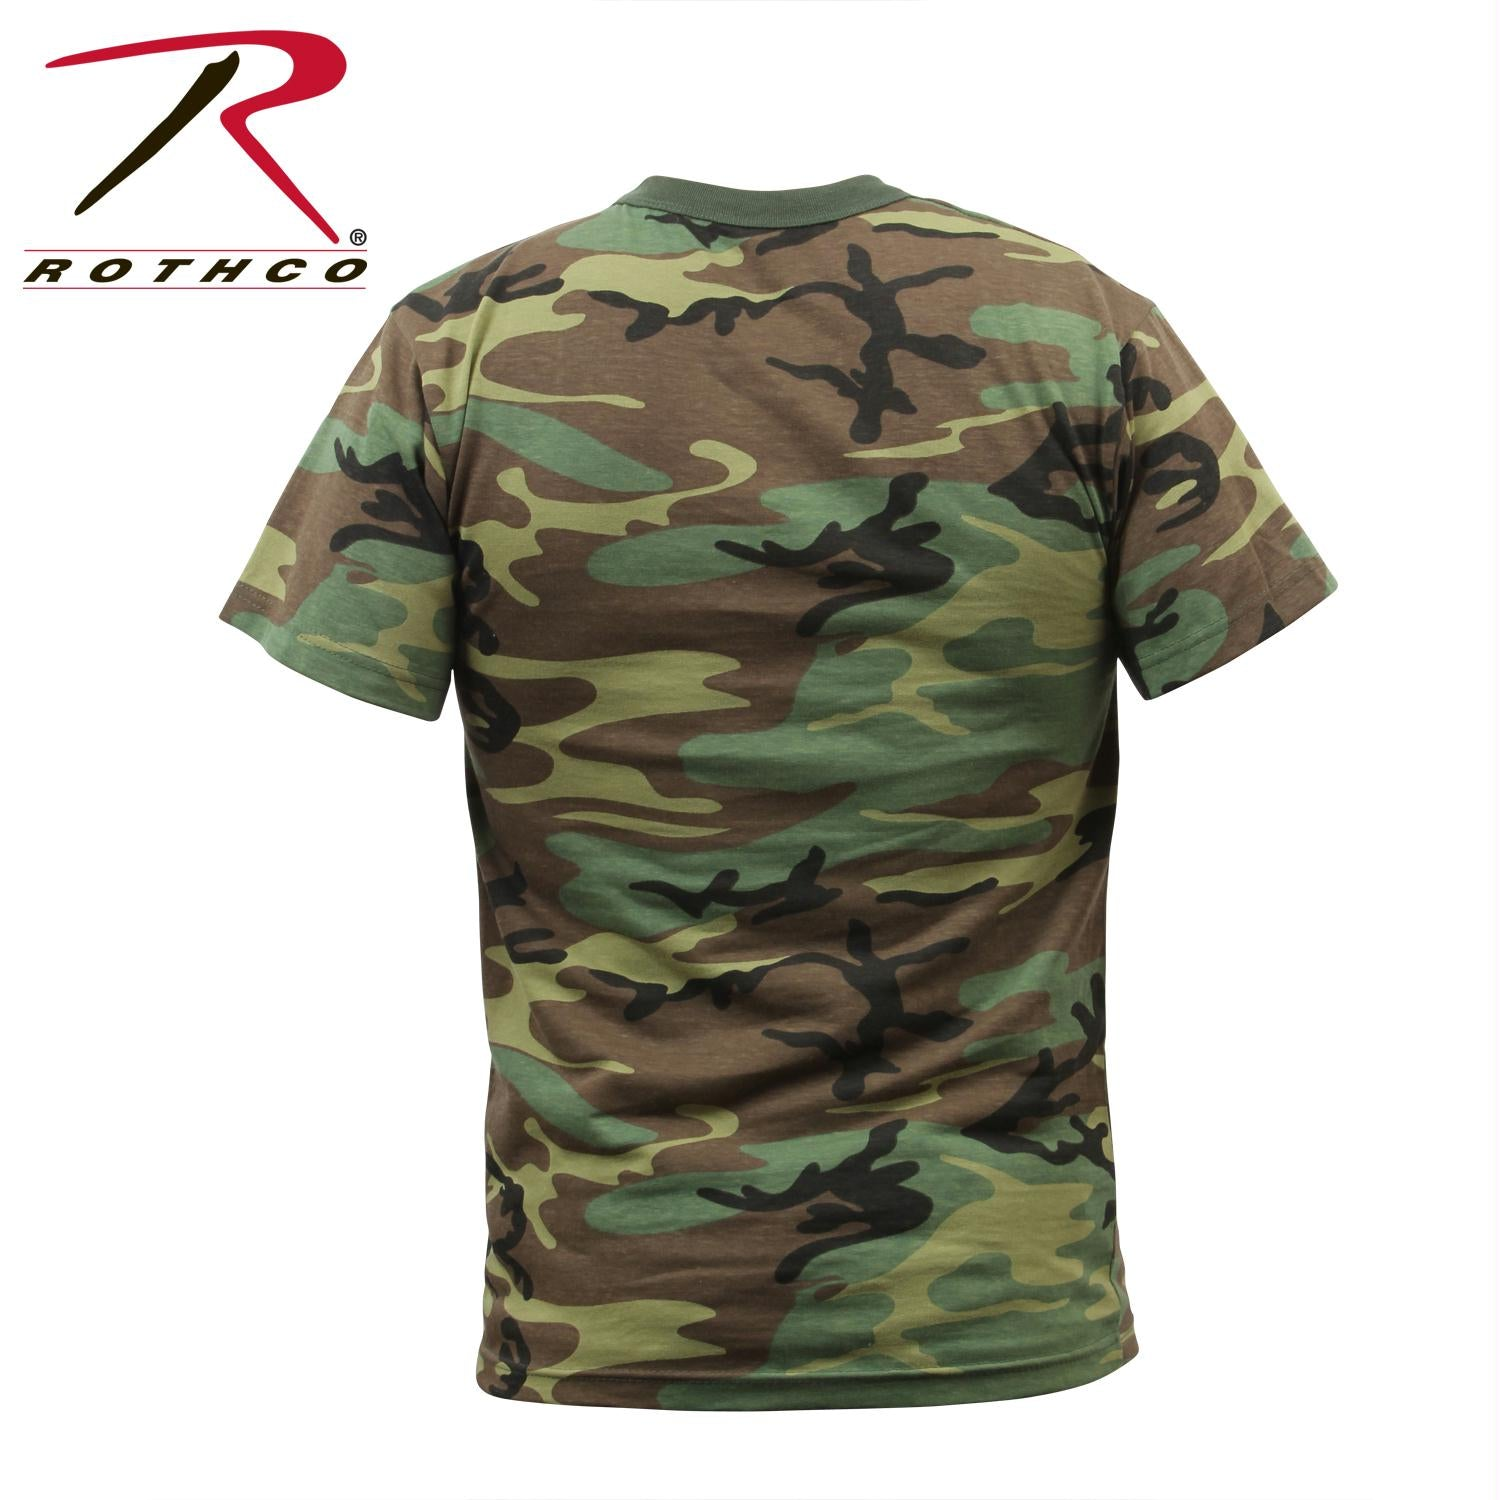 Rothco Childrens Woodland Camo Heavyweight T-Shirt